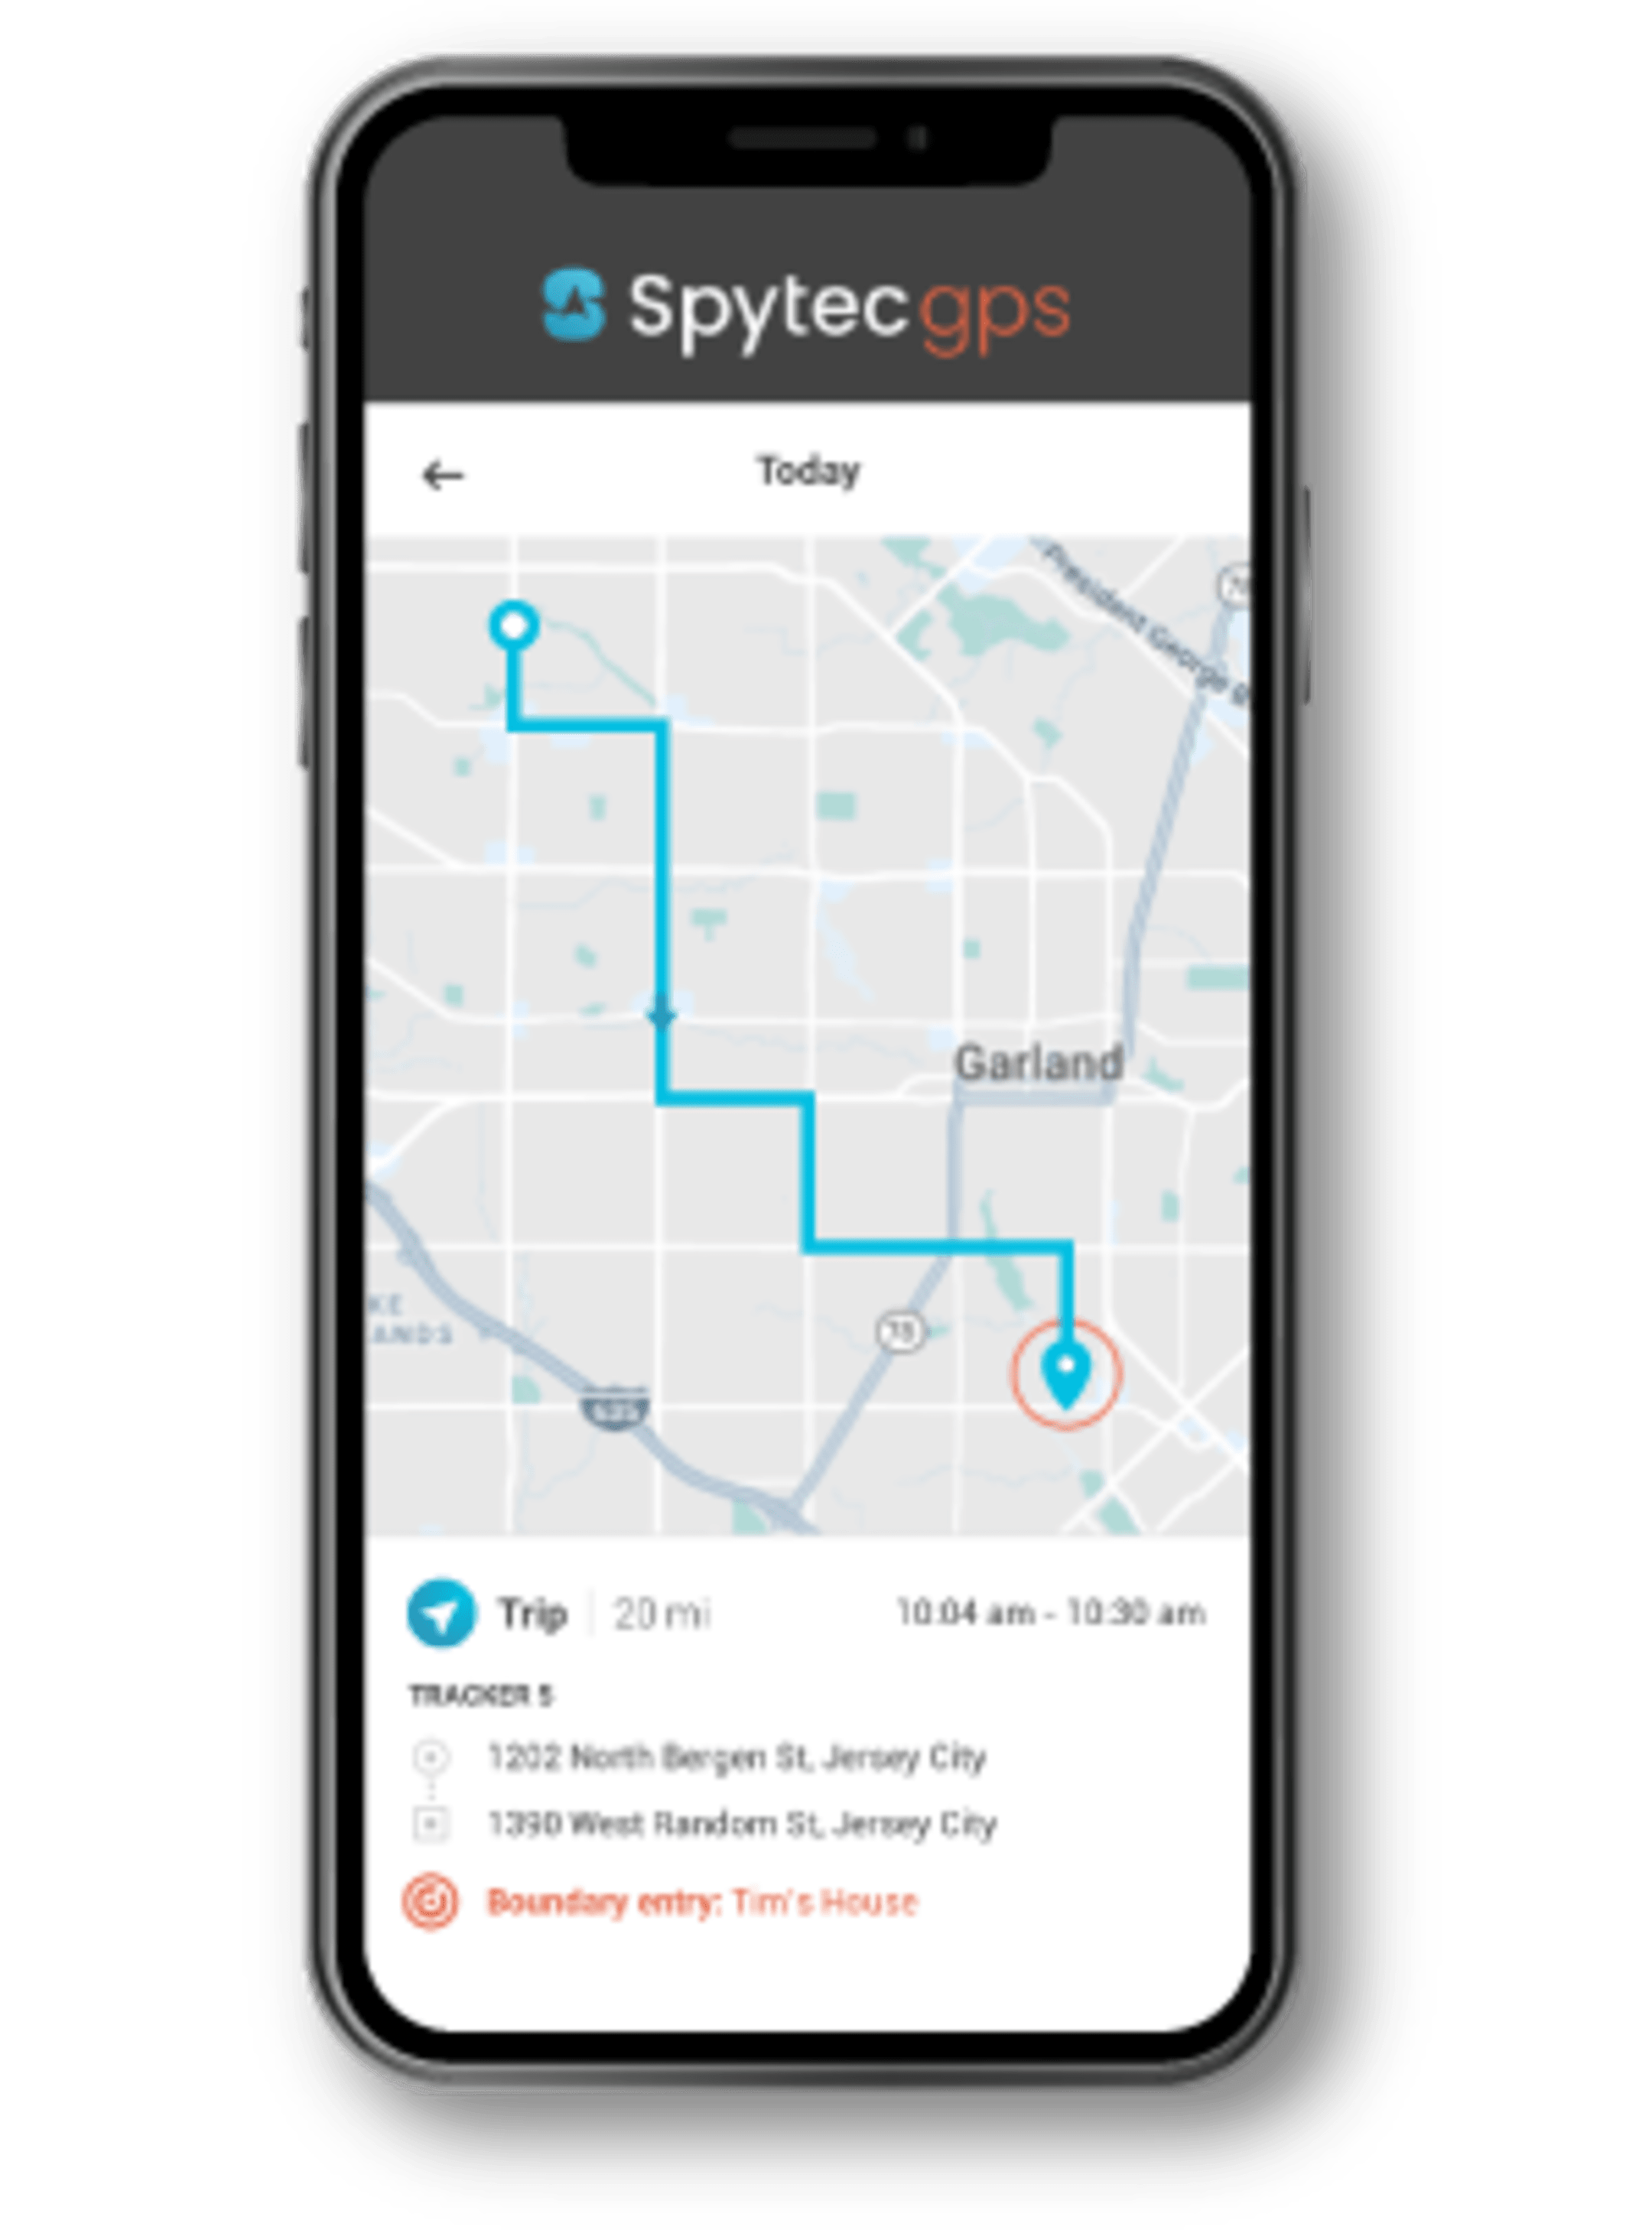 The Spytec GPS Tracking App